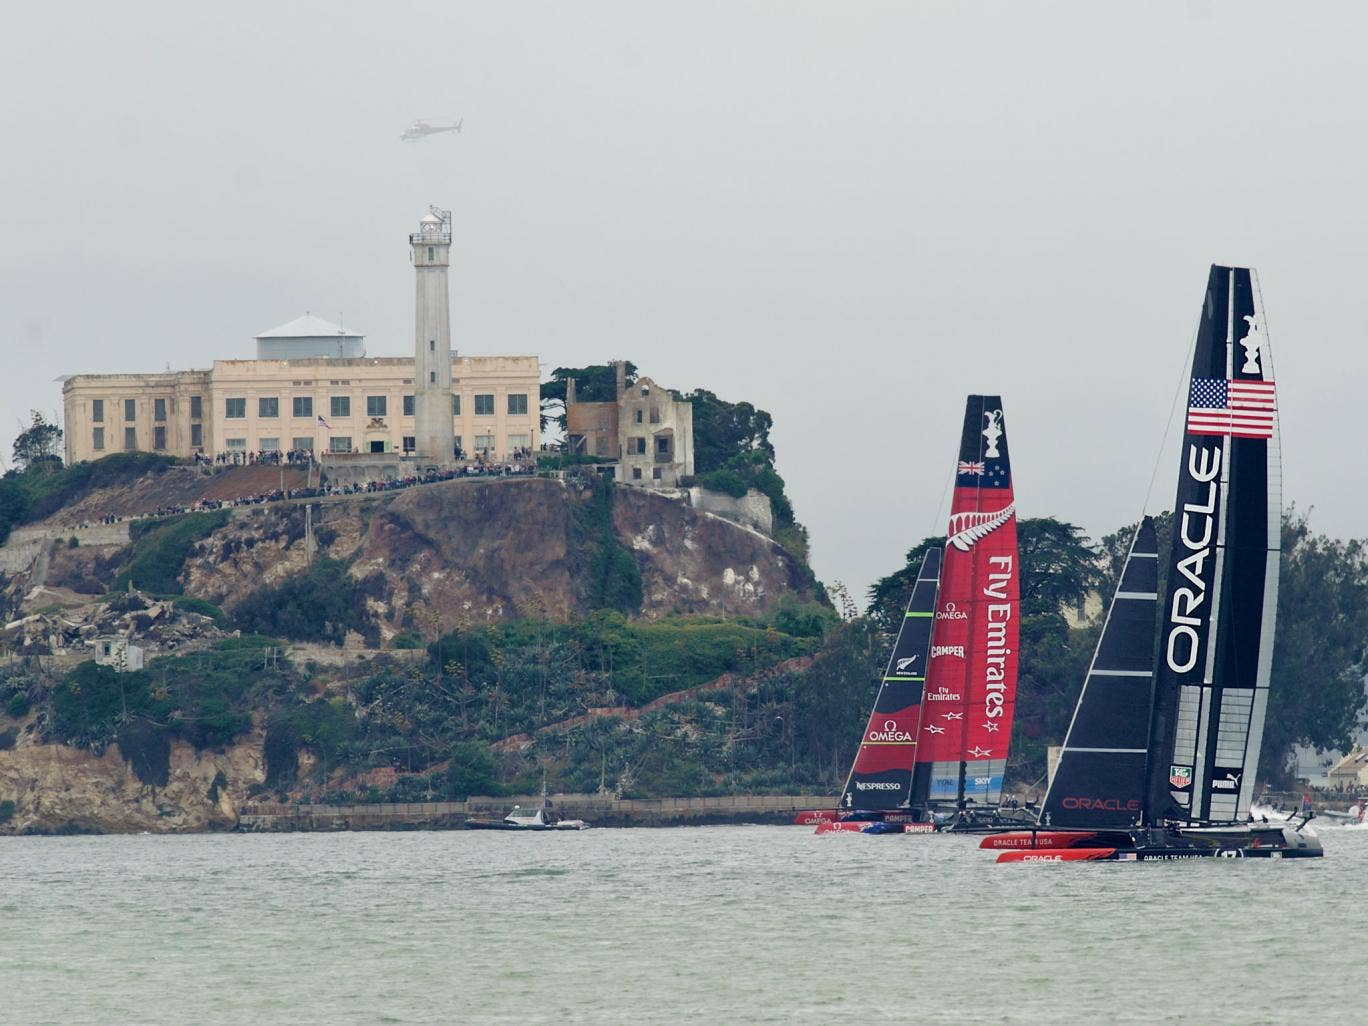 Passing Alcatraz Island in light wind, Emirates Team New Zealand and Oracle Team USA sail America's Cup race 13